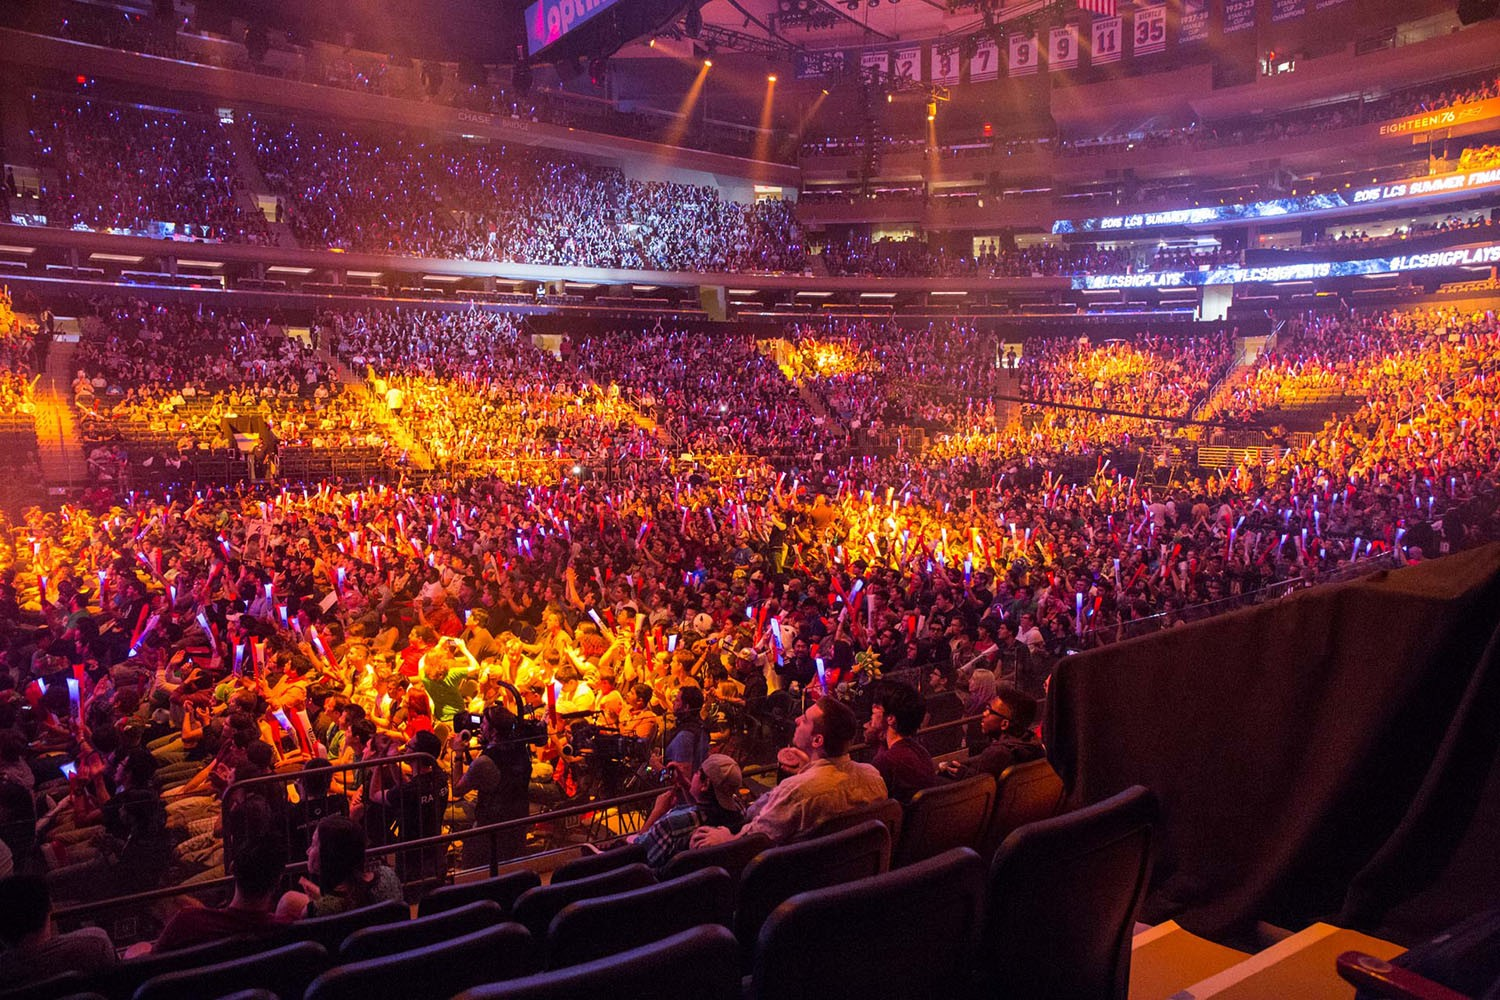 Charming League Of Legends NA LCS Championship Game In Madison Square Garden.  Credit: Mashable